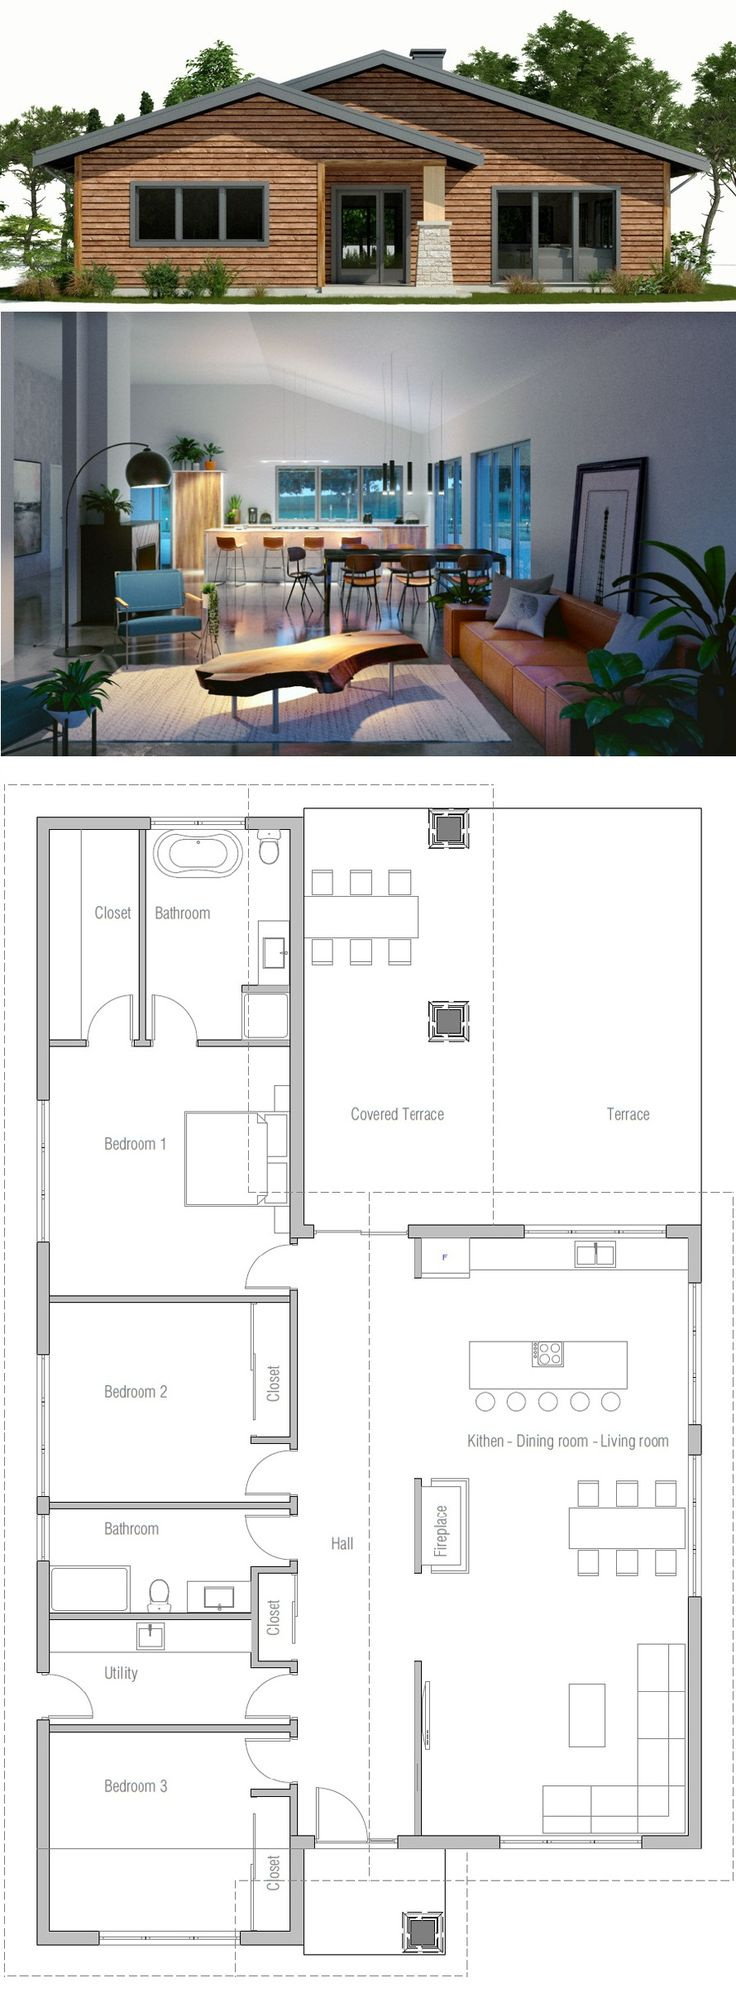 best 25 stair plan ideas on pinterest stair ladder floor plan 3 bdrms move kitchen and dr to front extend living space into terrace area add bsmnt stairs in utility side entry can make narrower to fit